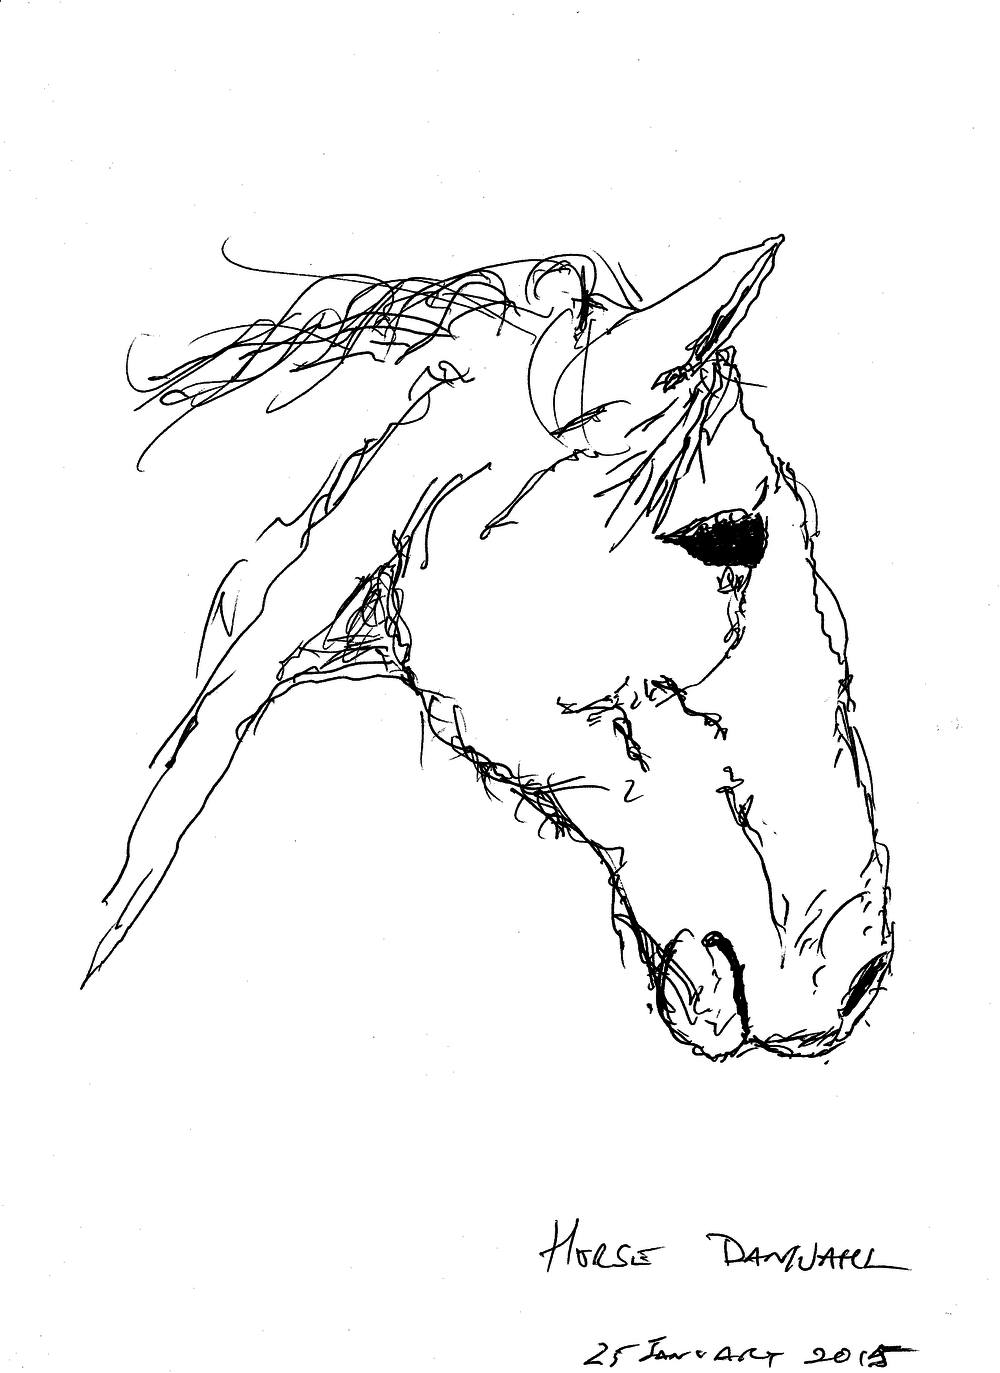 Dan Wahl - Hinterland Art Crawl - horse drawing